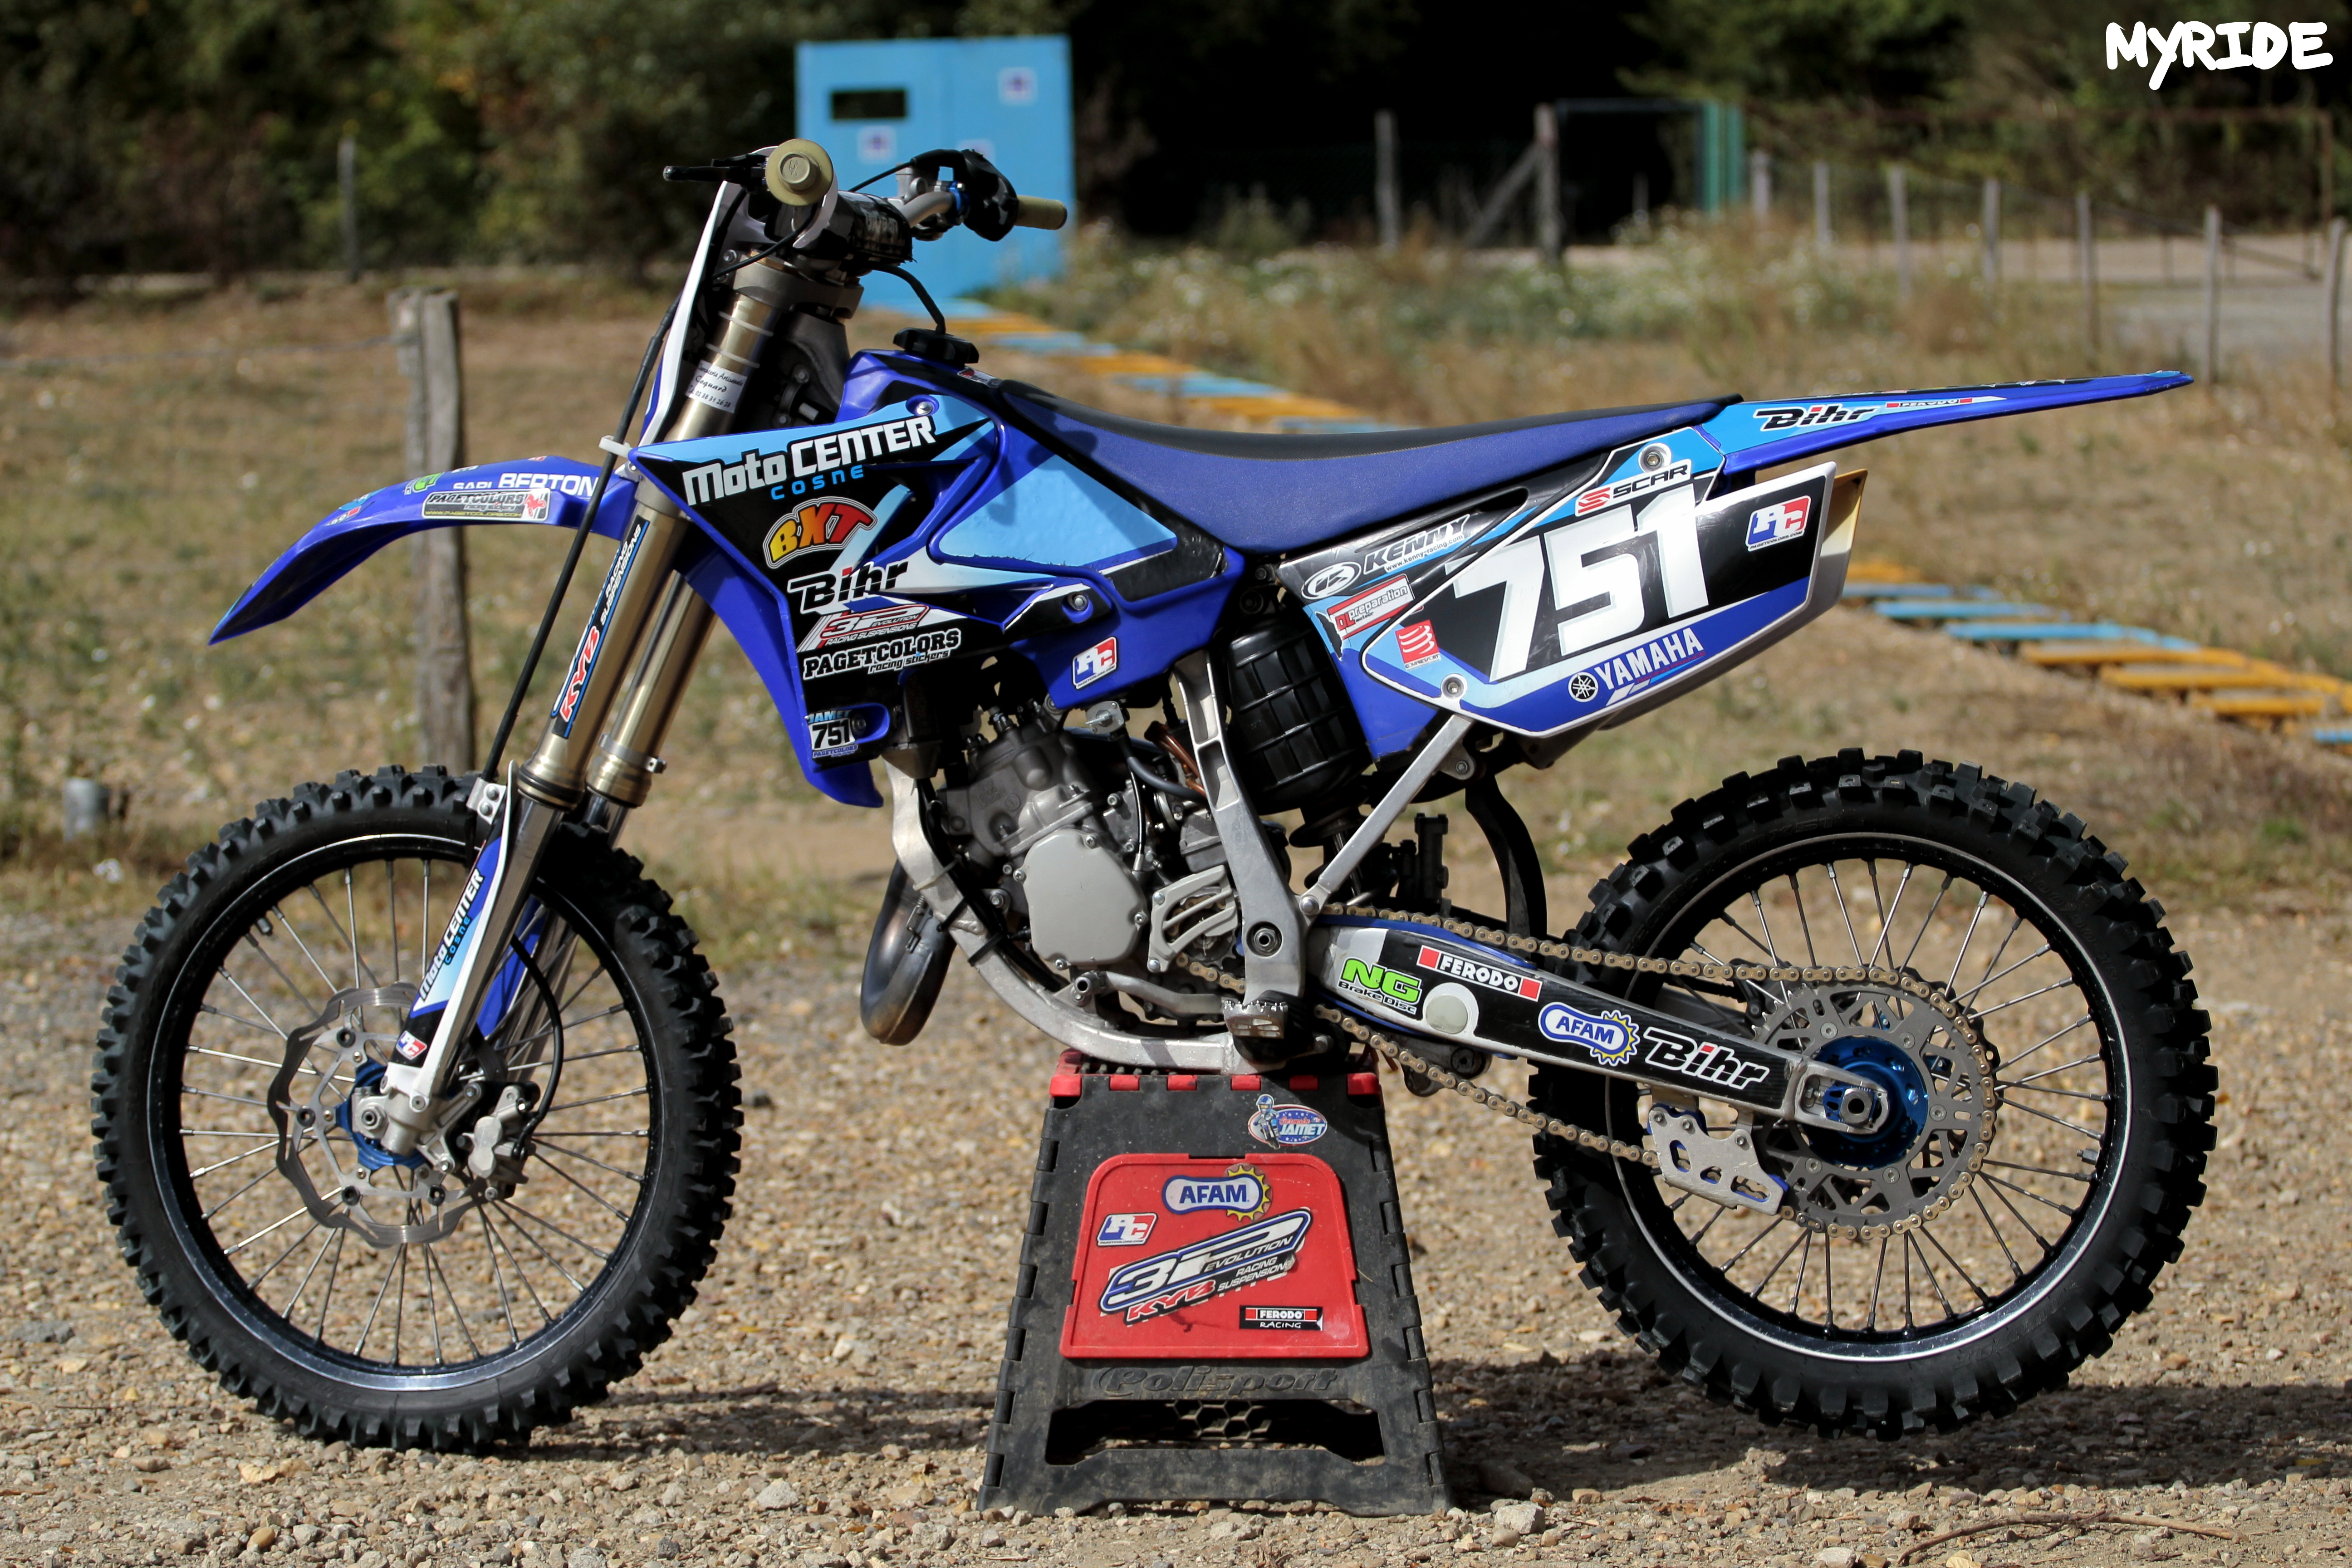 yamaha 125 yz 2012 g jamet myridephotography 39 s bike. Black Bedroom Furniture Sets. Home Design Ideas